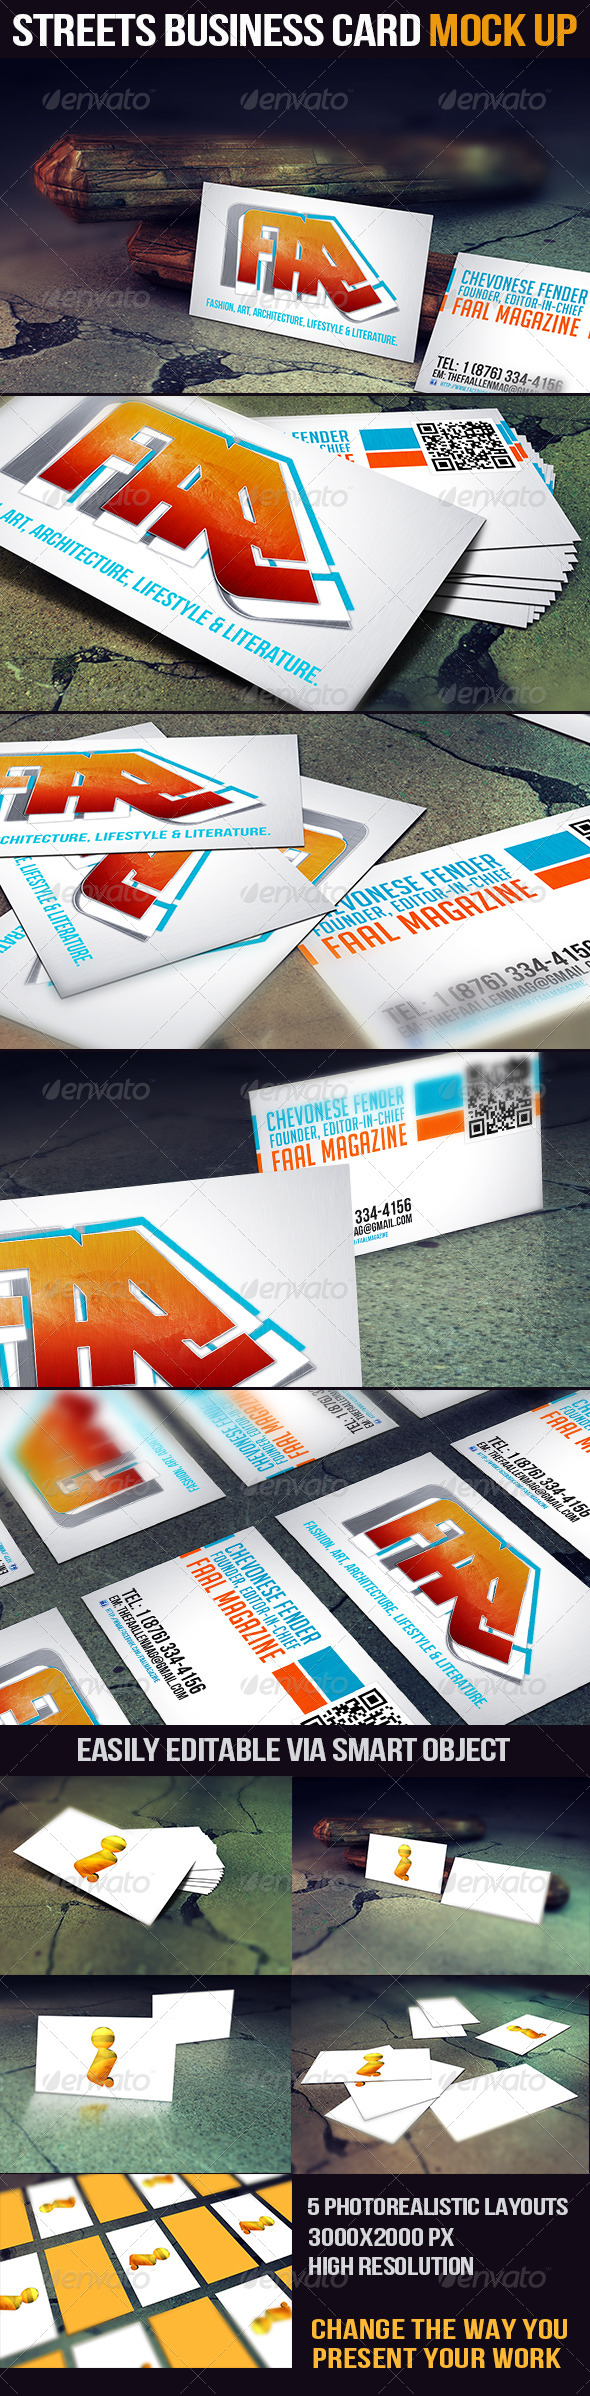 Streets Business Card Mock Up - Print Product Mock-Ups